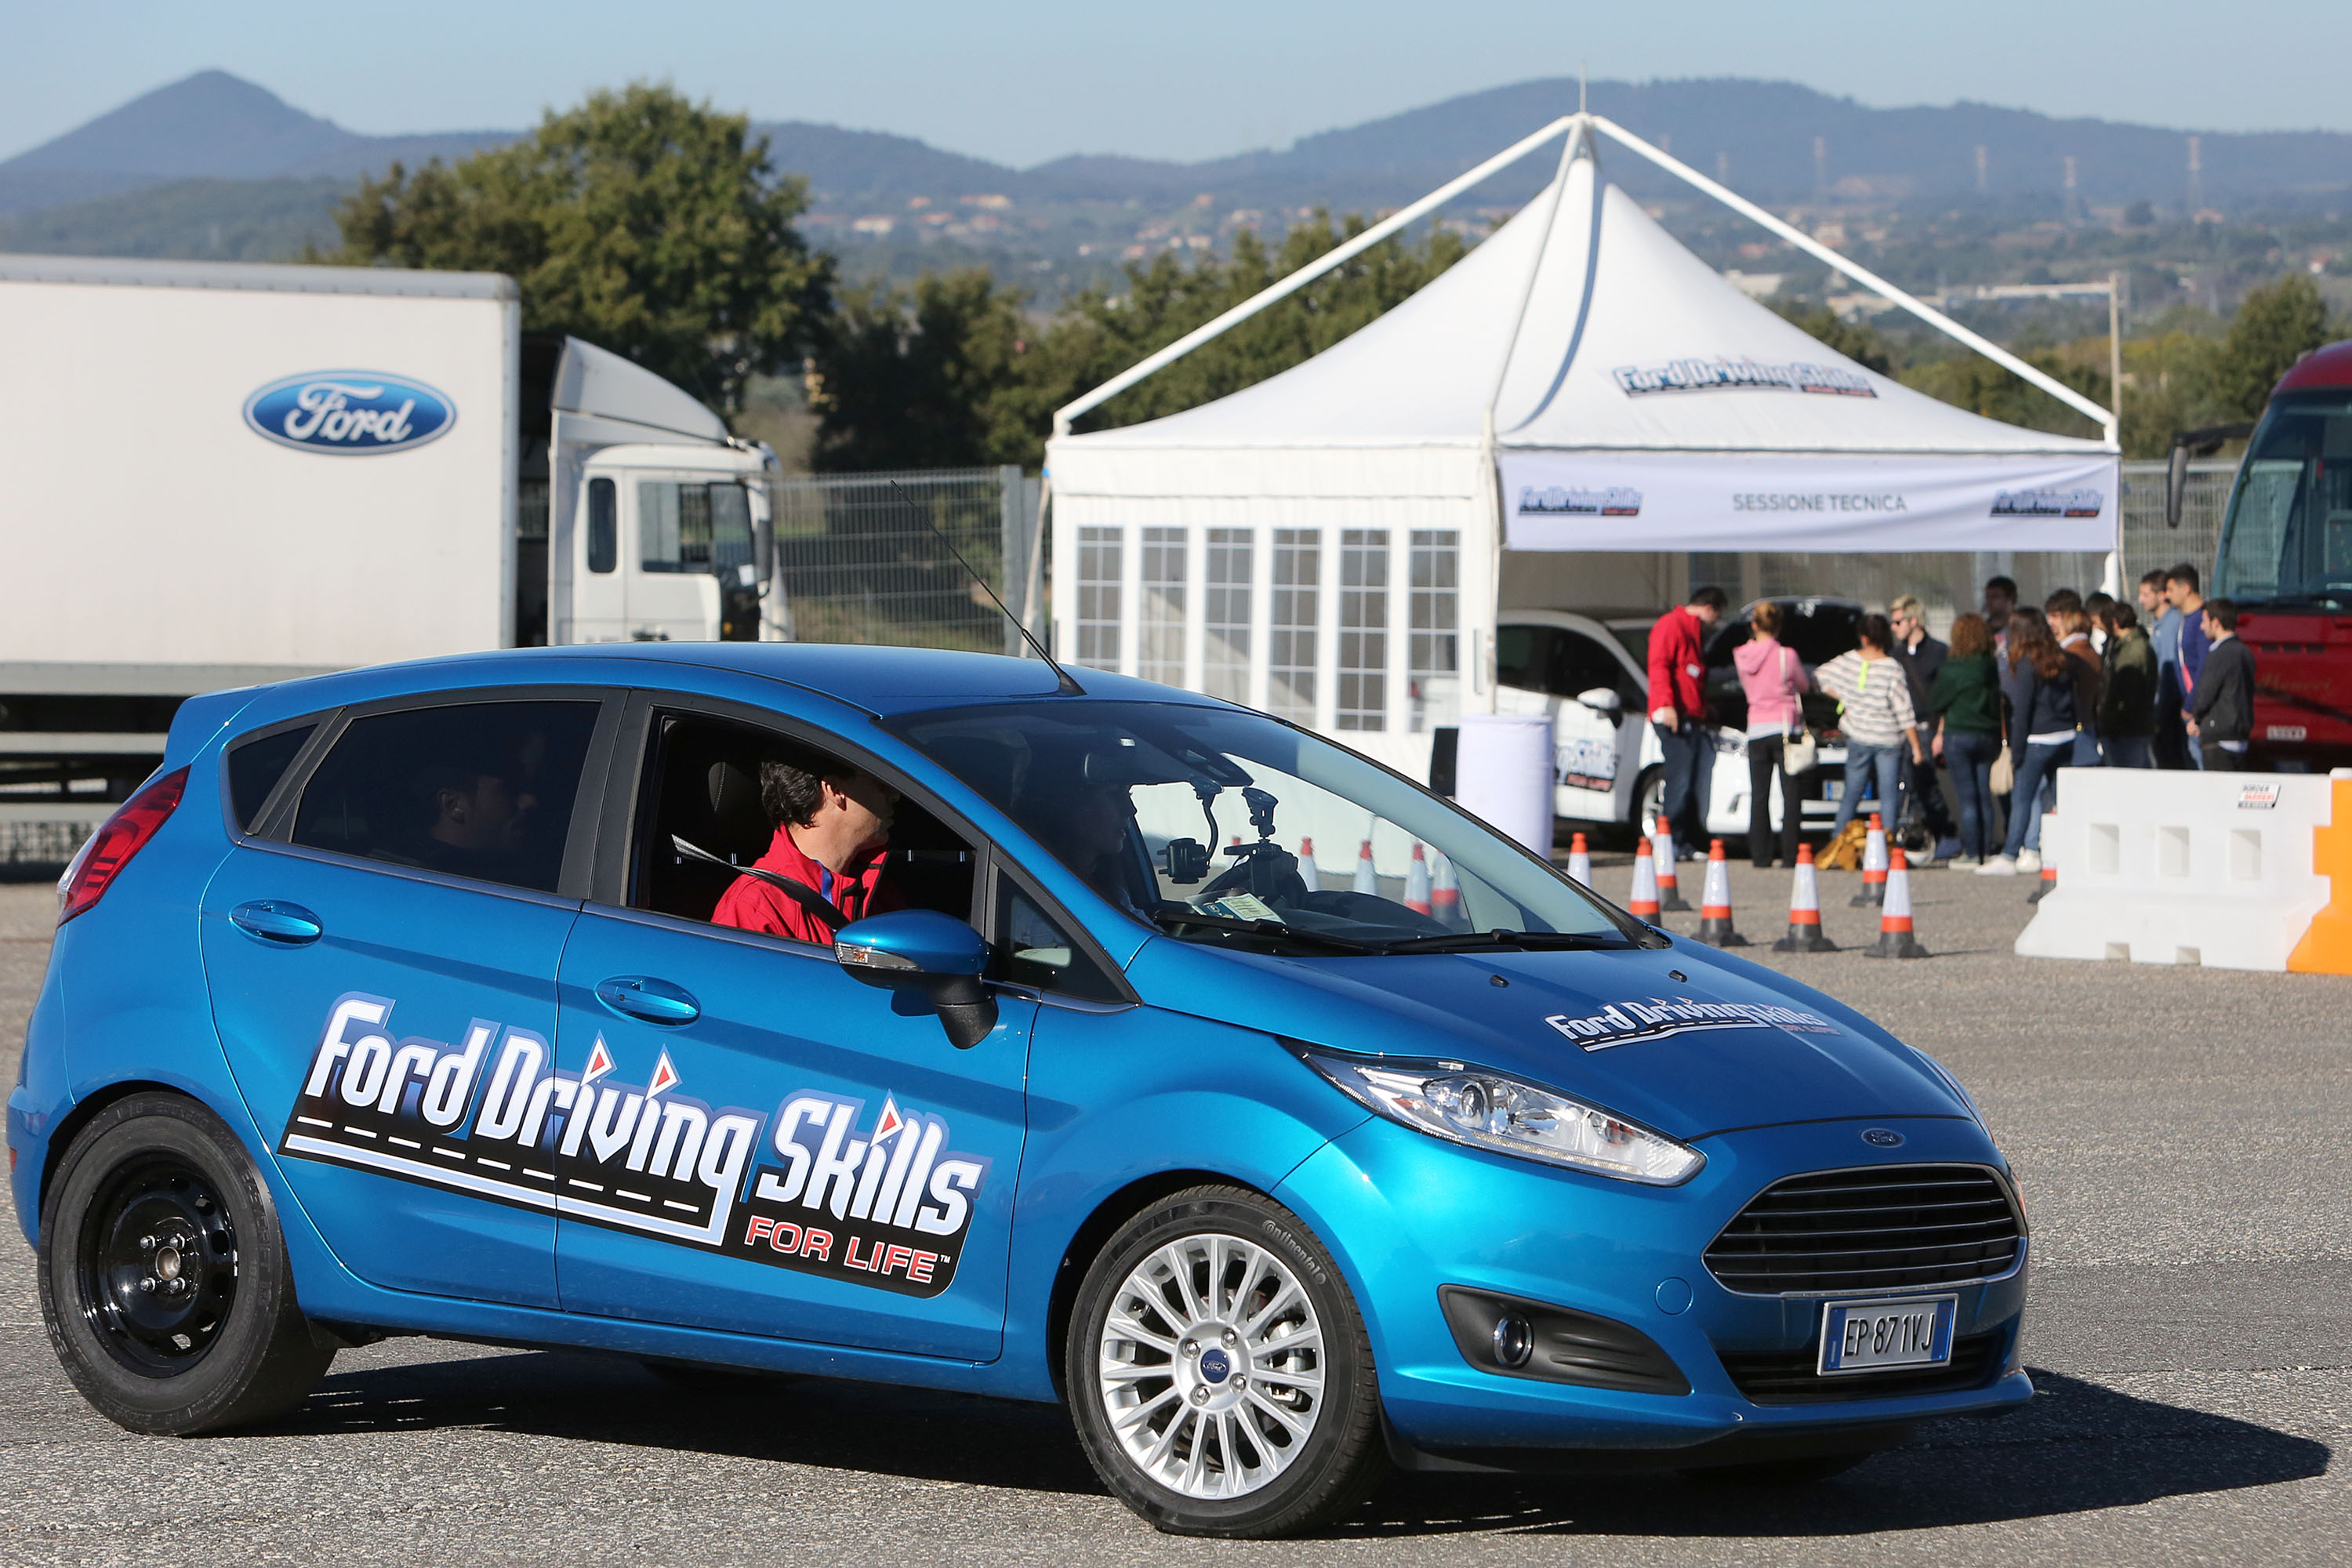 Driving Skills For Life: debutto a Napoli